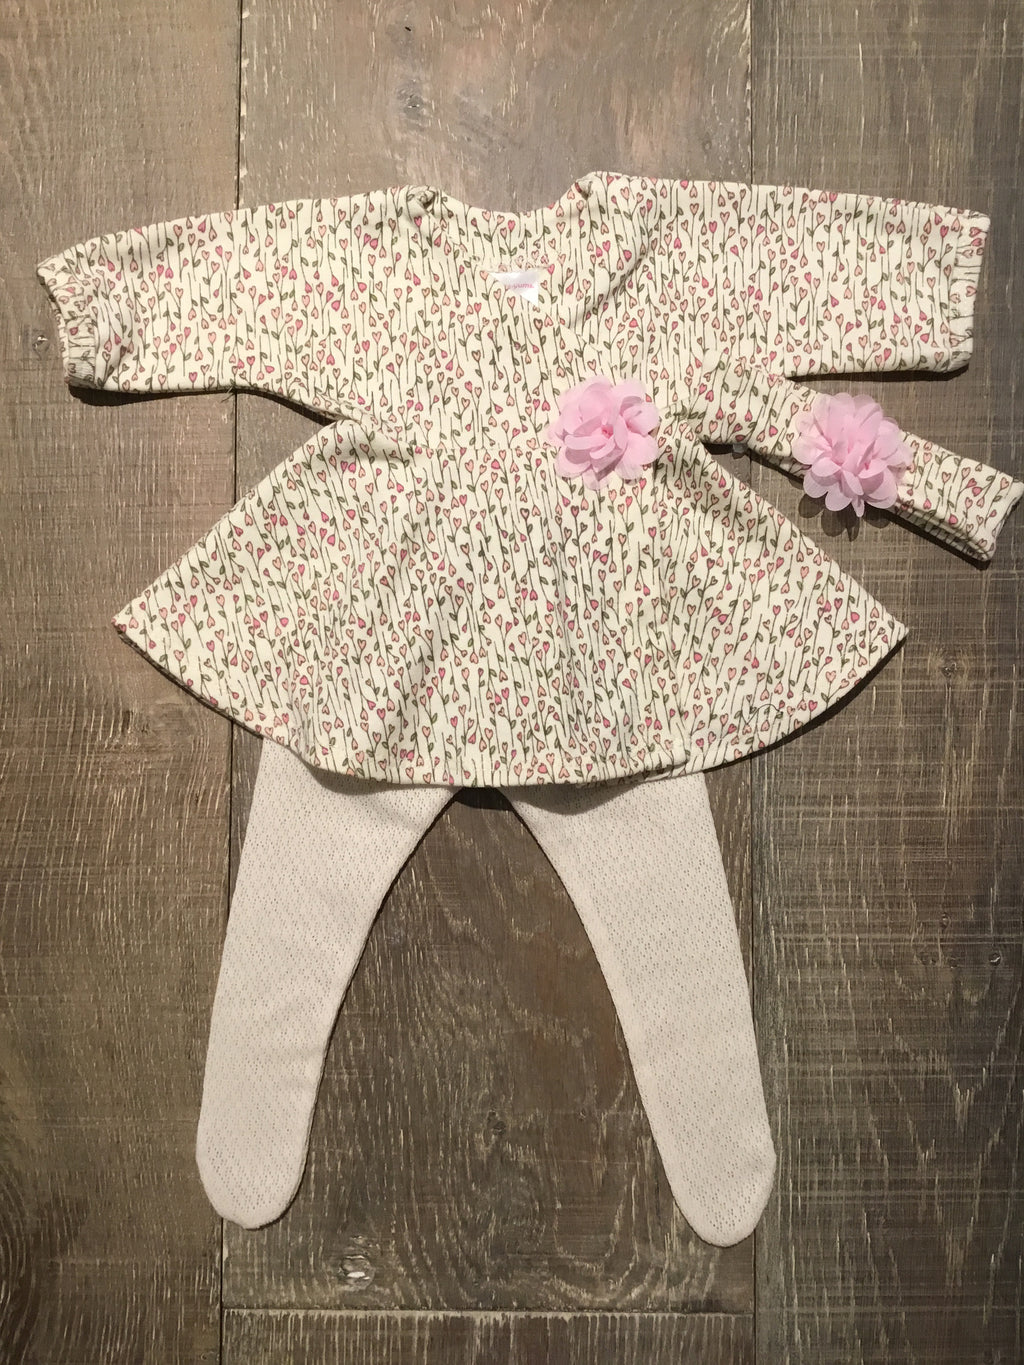 Preemie Floral Wrap Dress/Tights/Headband